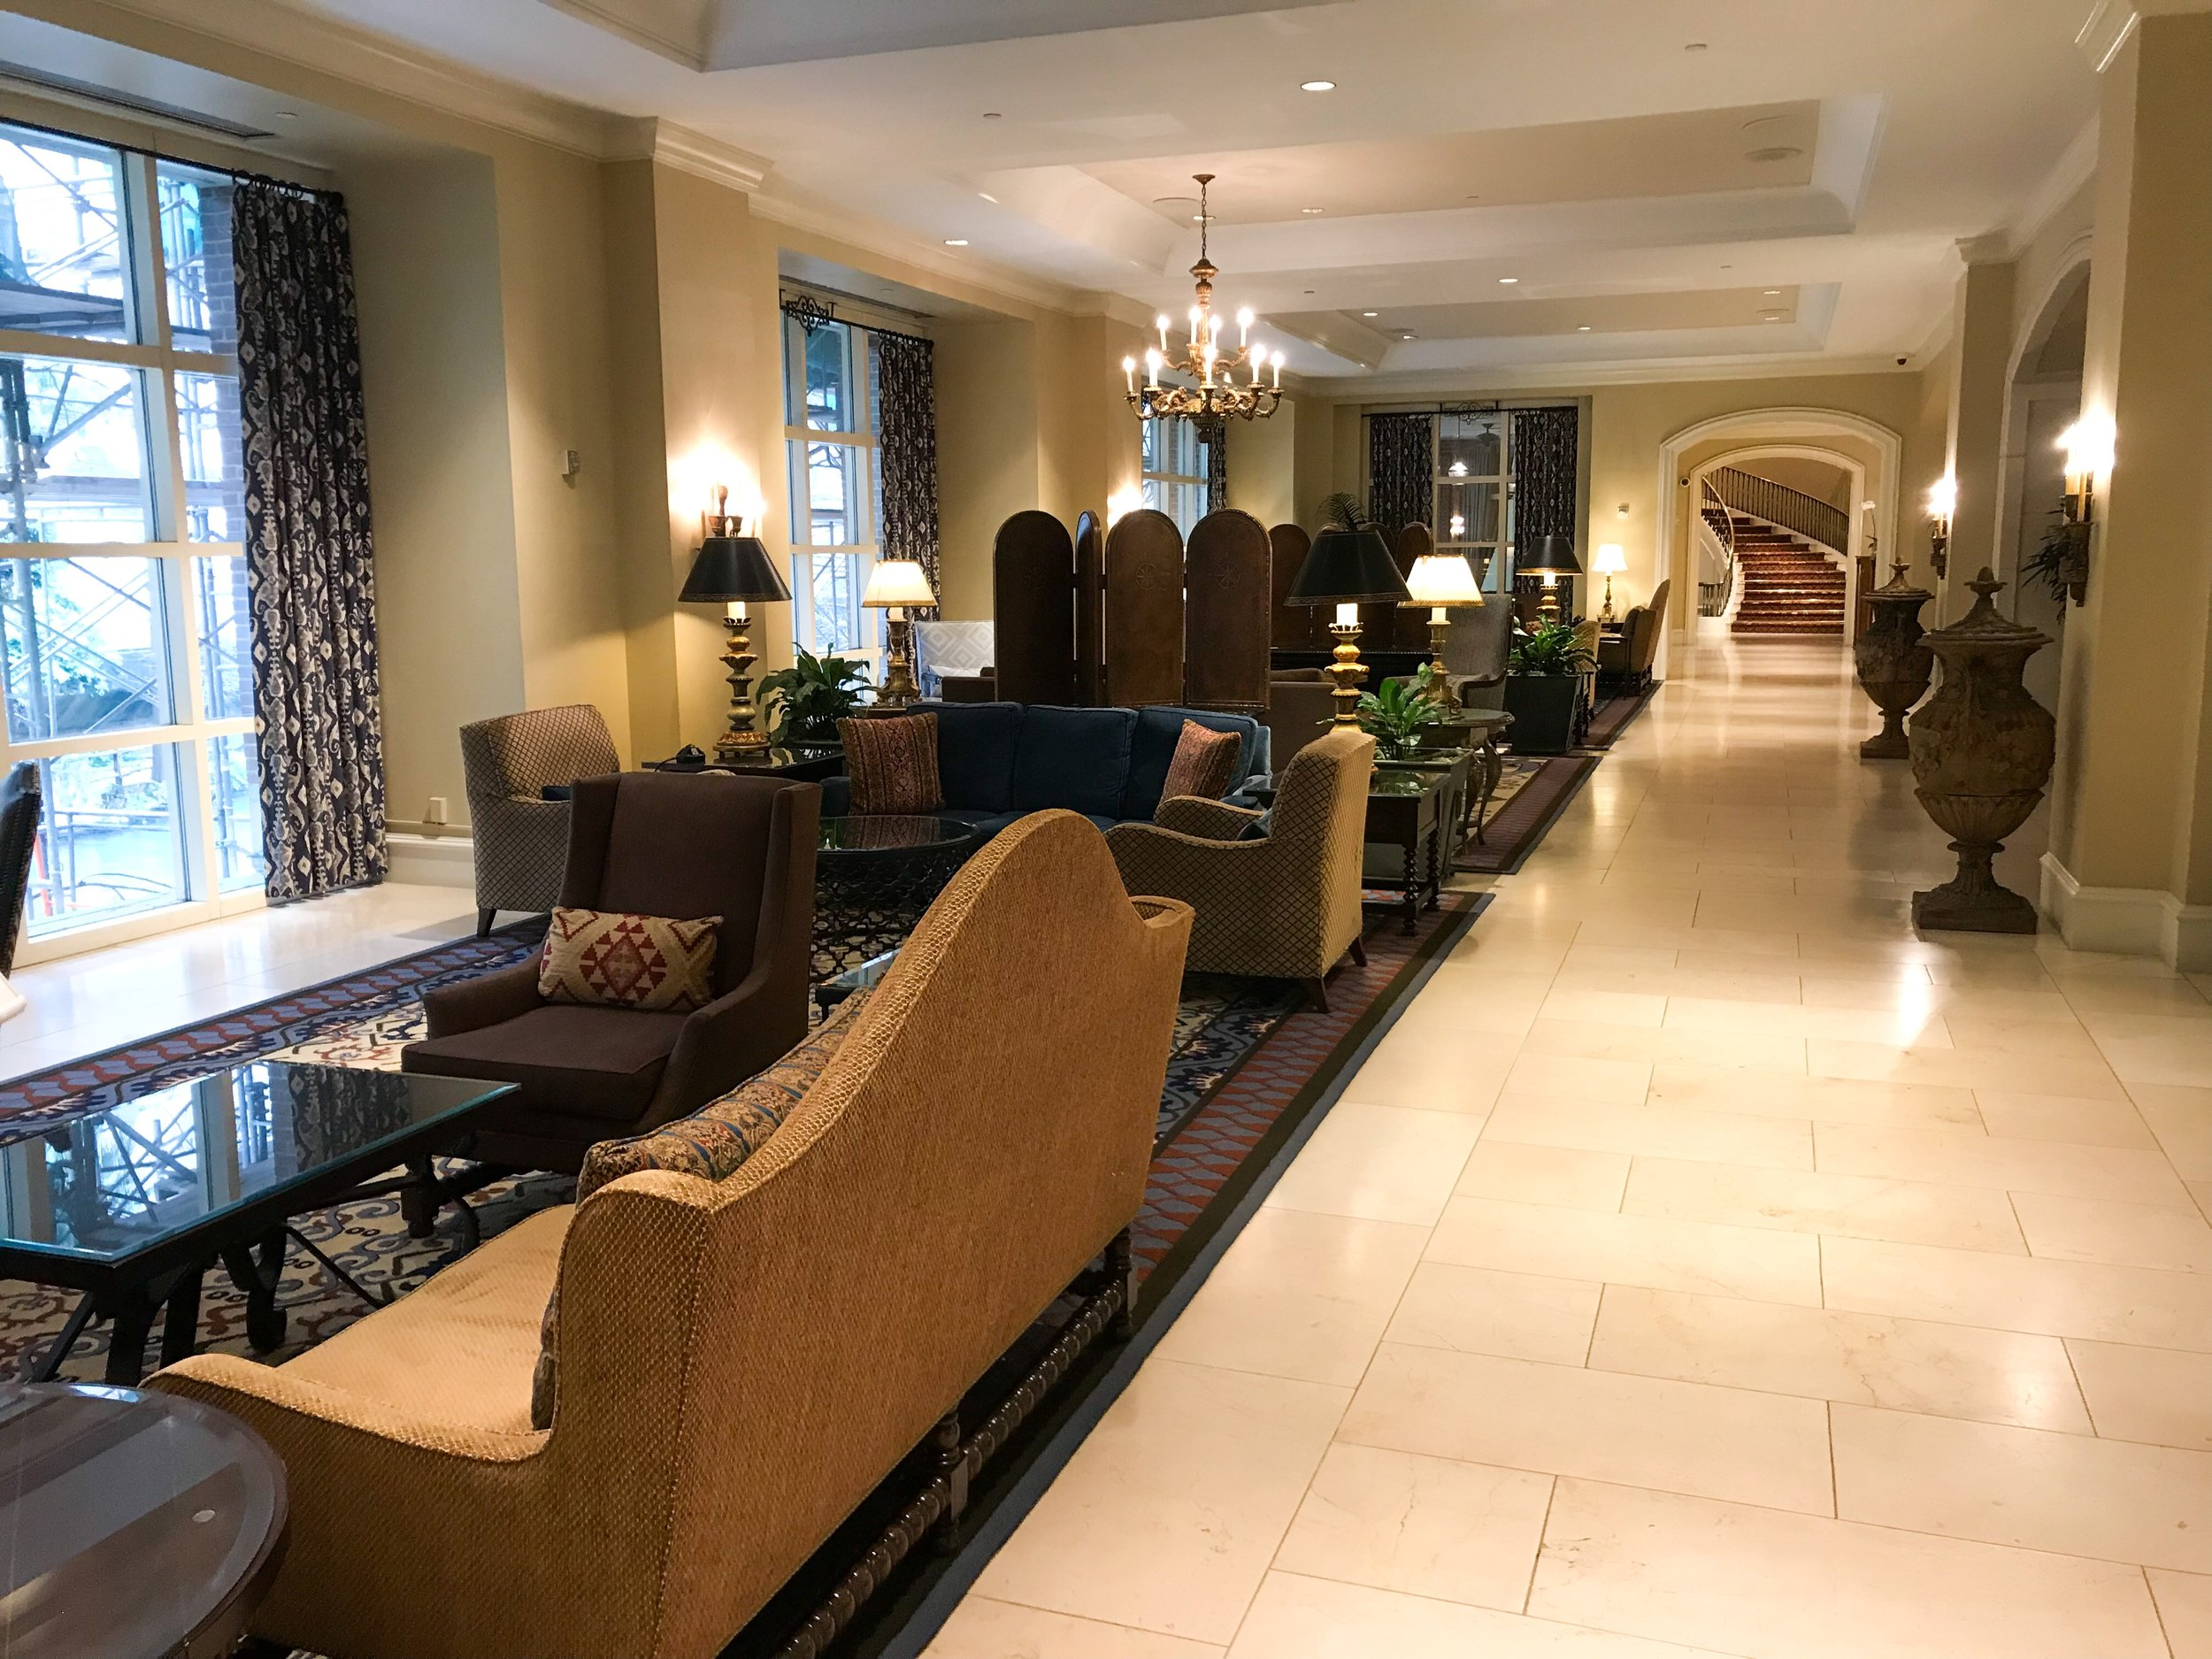 The lobby was luxuriously appointed.